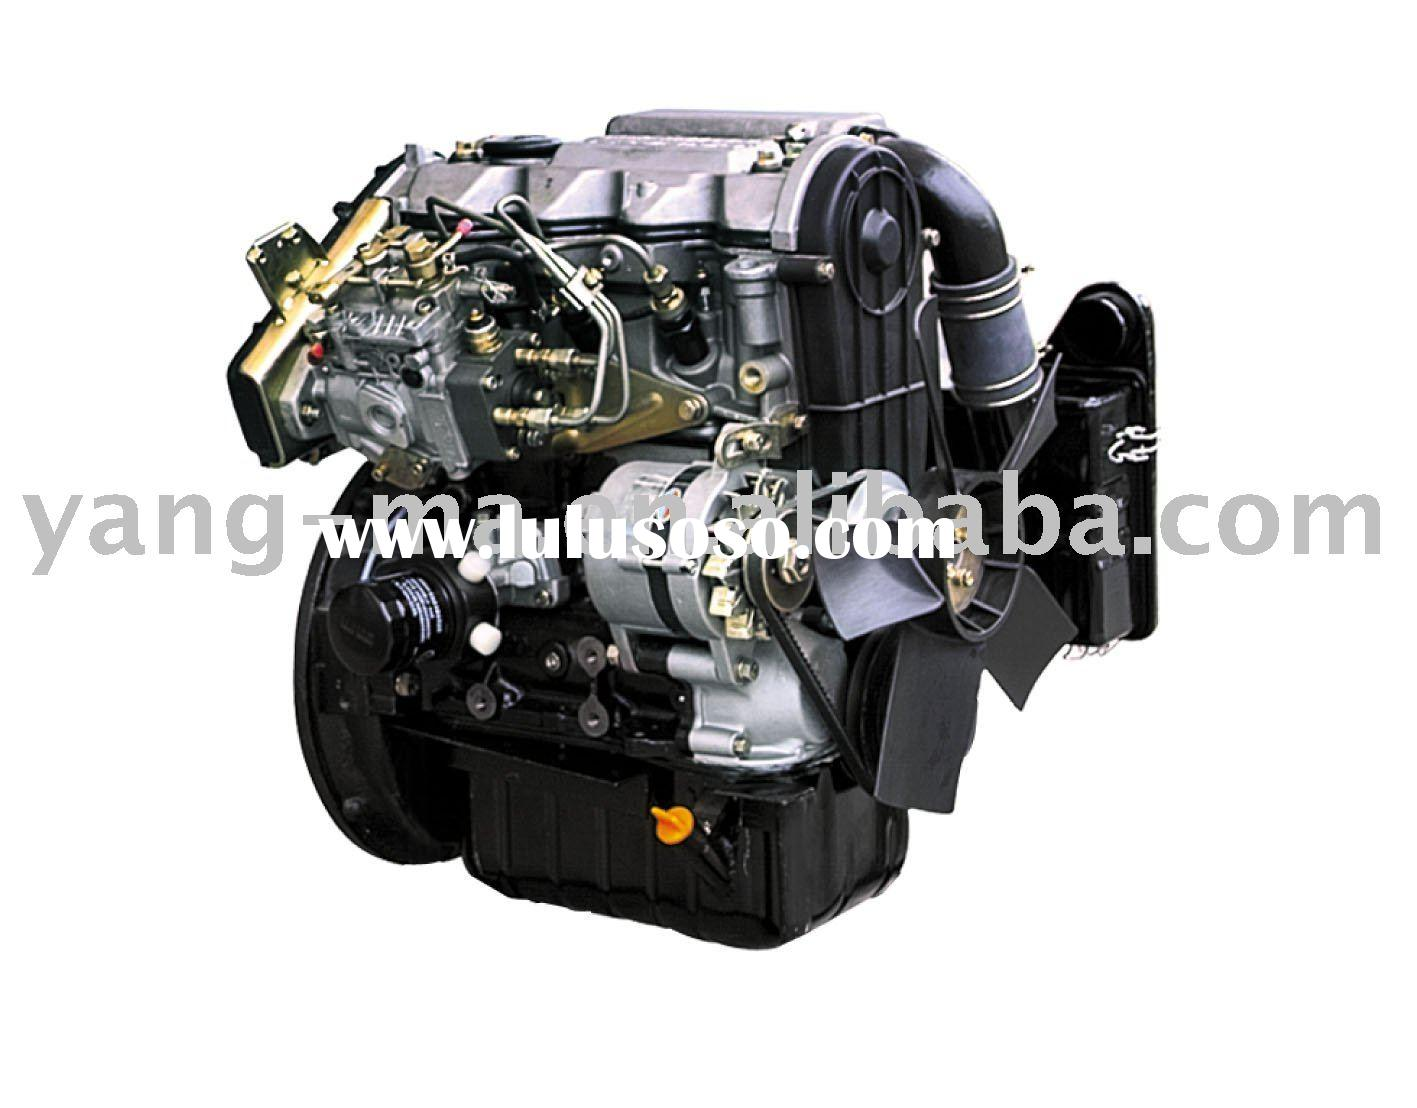 15.8KW 2 cylinder water cooled 4 stroke portable marine diesel engine(With gear box)